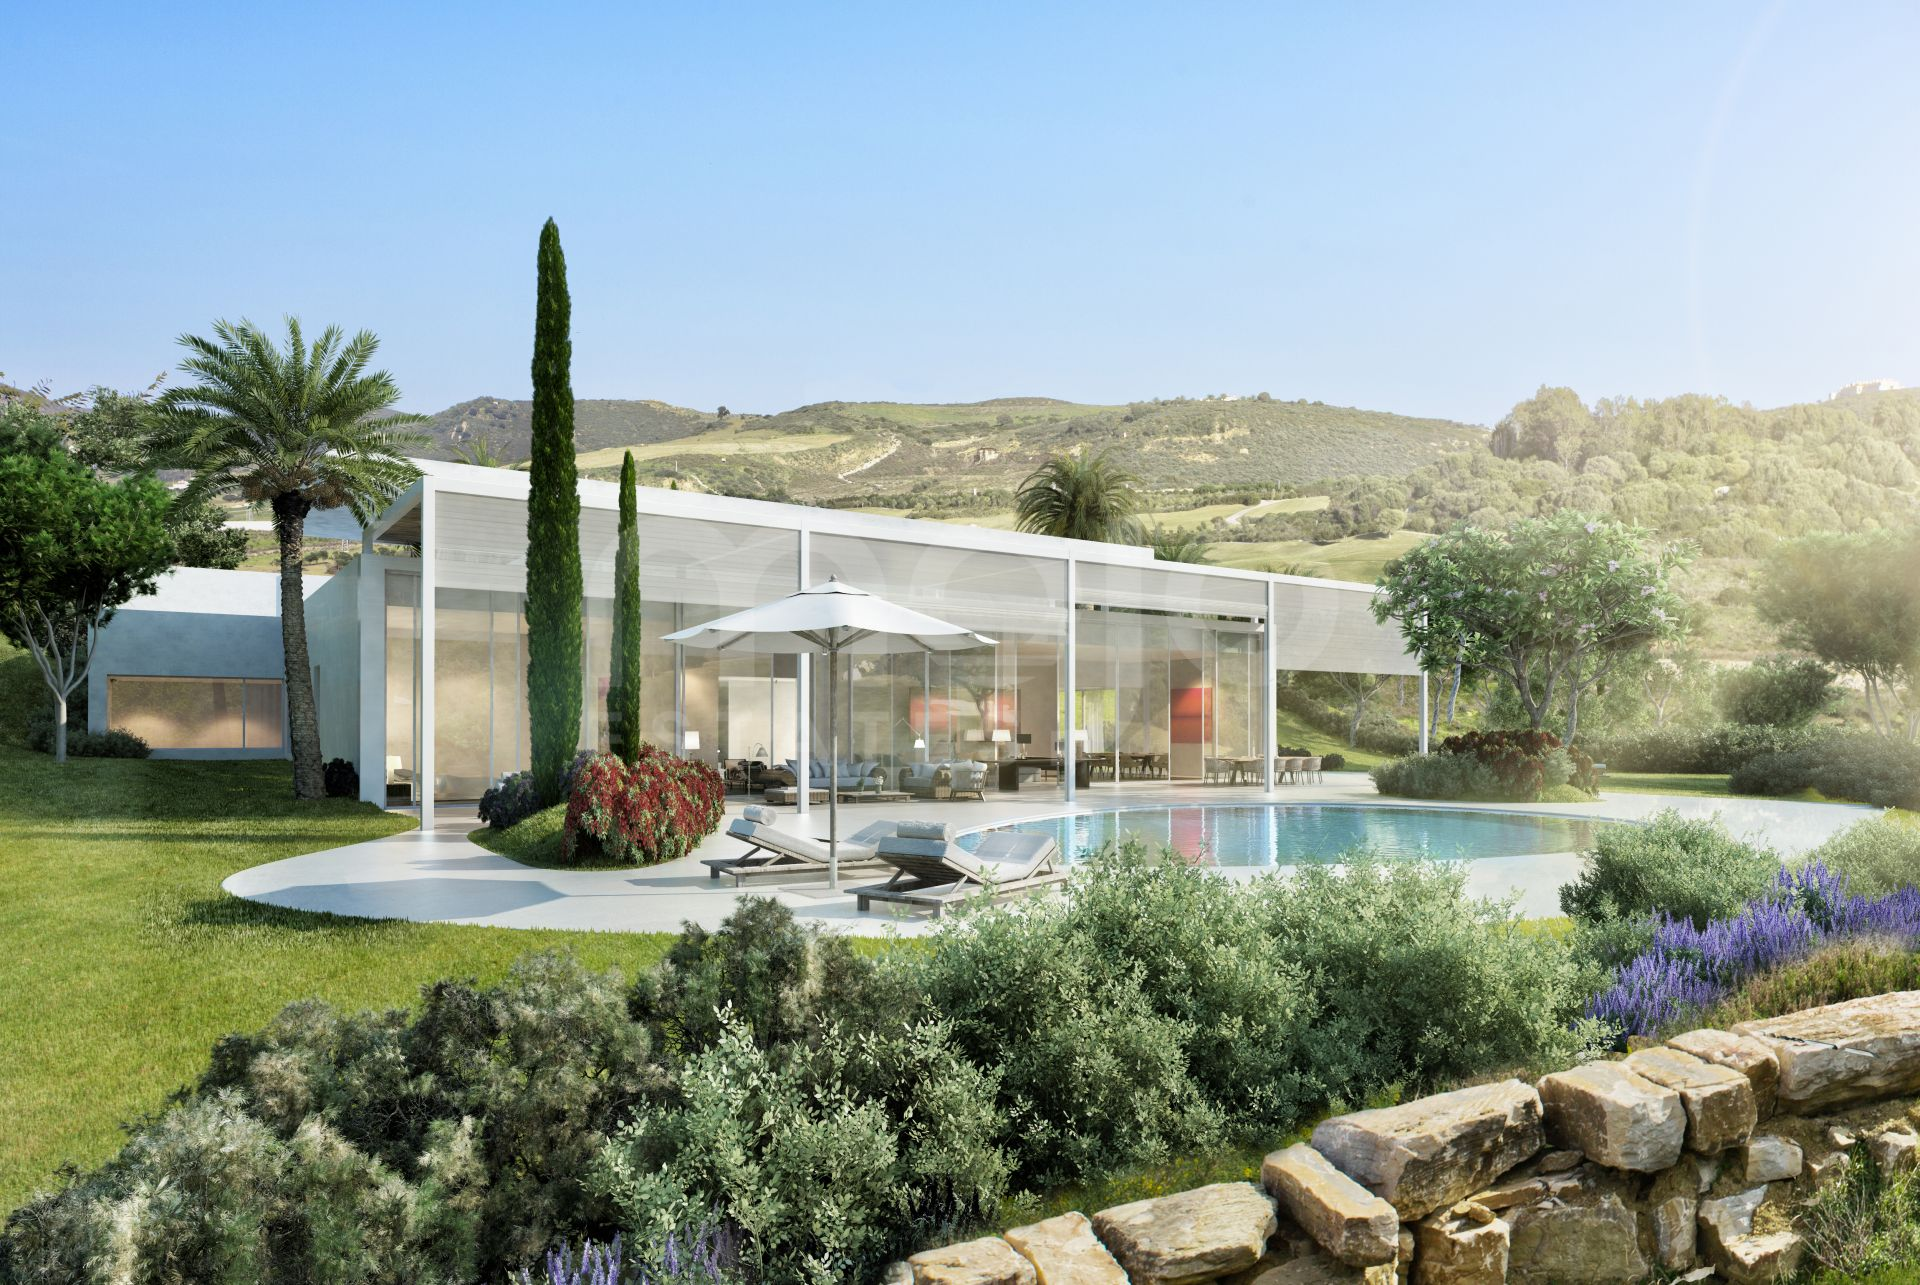 EXCEPTIONAL 4 BEDROOM CONTEMPORARY VILLA IN THE EXCLUSIVE FINCA CORTESIN ESTATE, CASARES